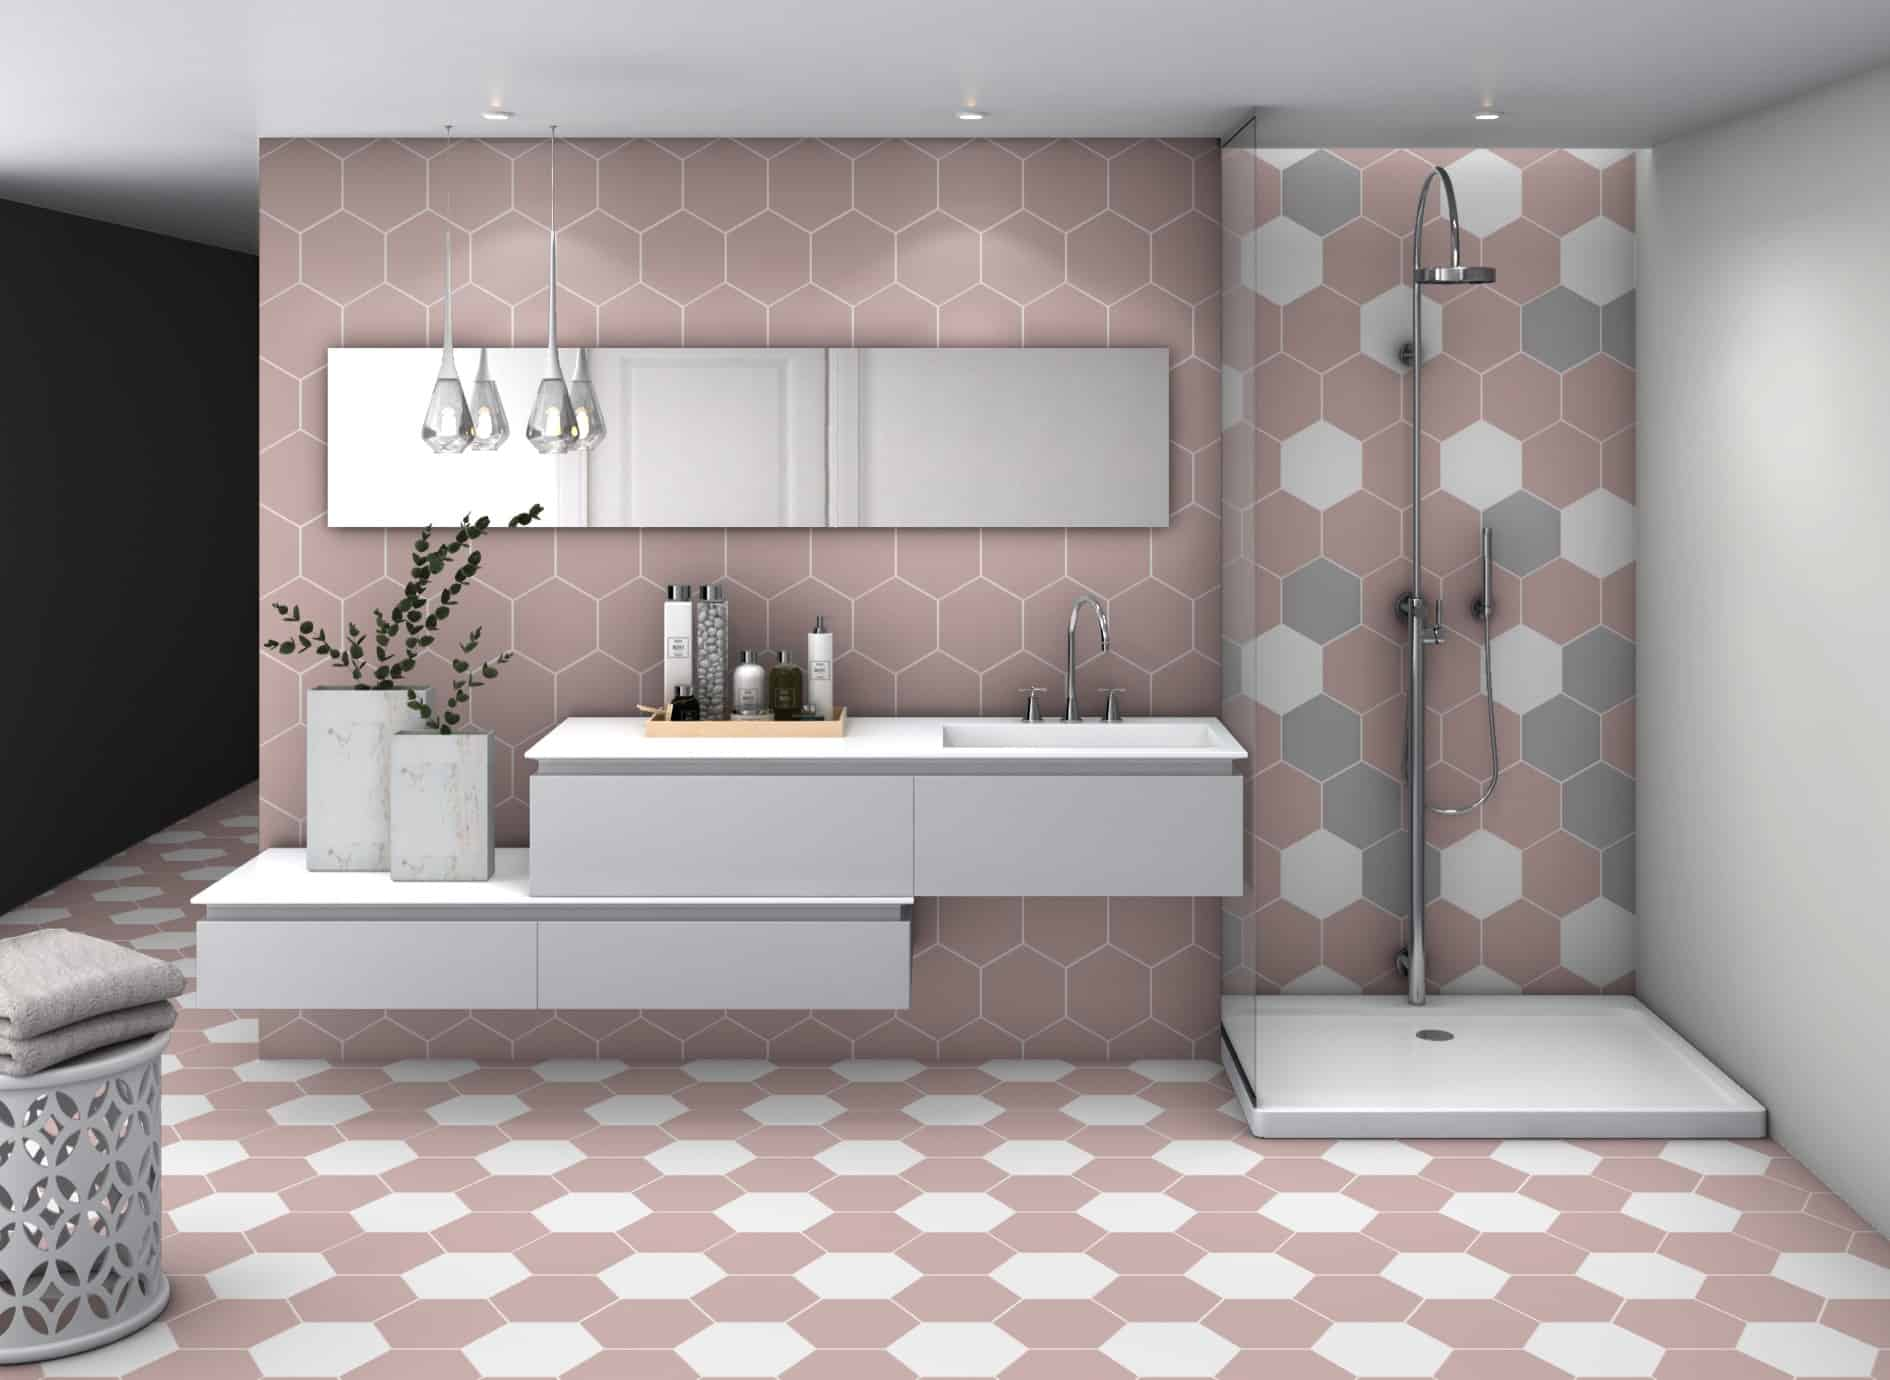 Deco Hex Basic Rose Decobella South Africa 0036 Pnk